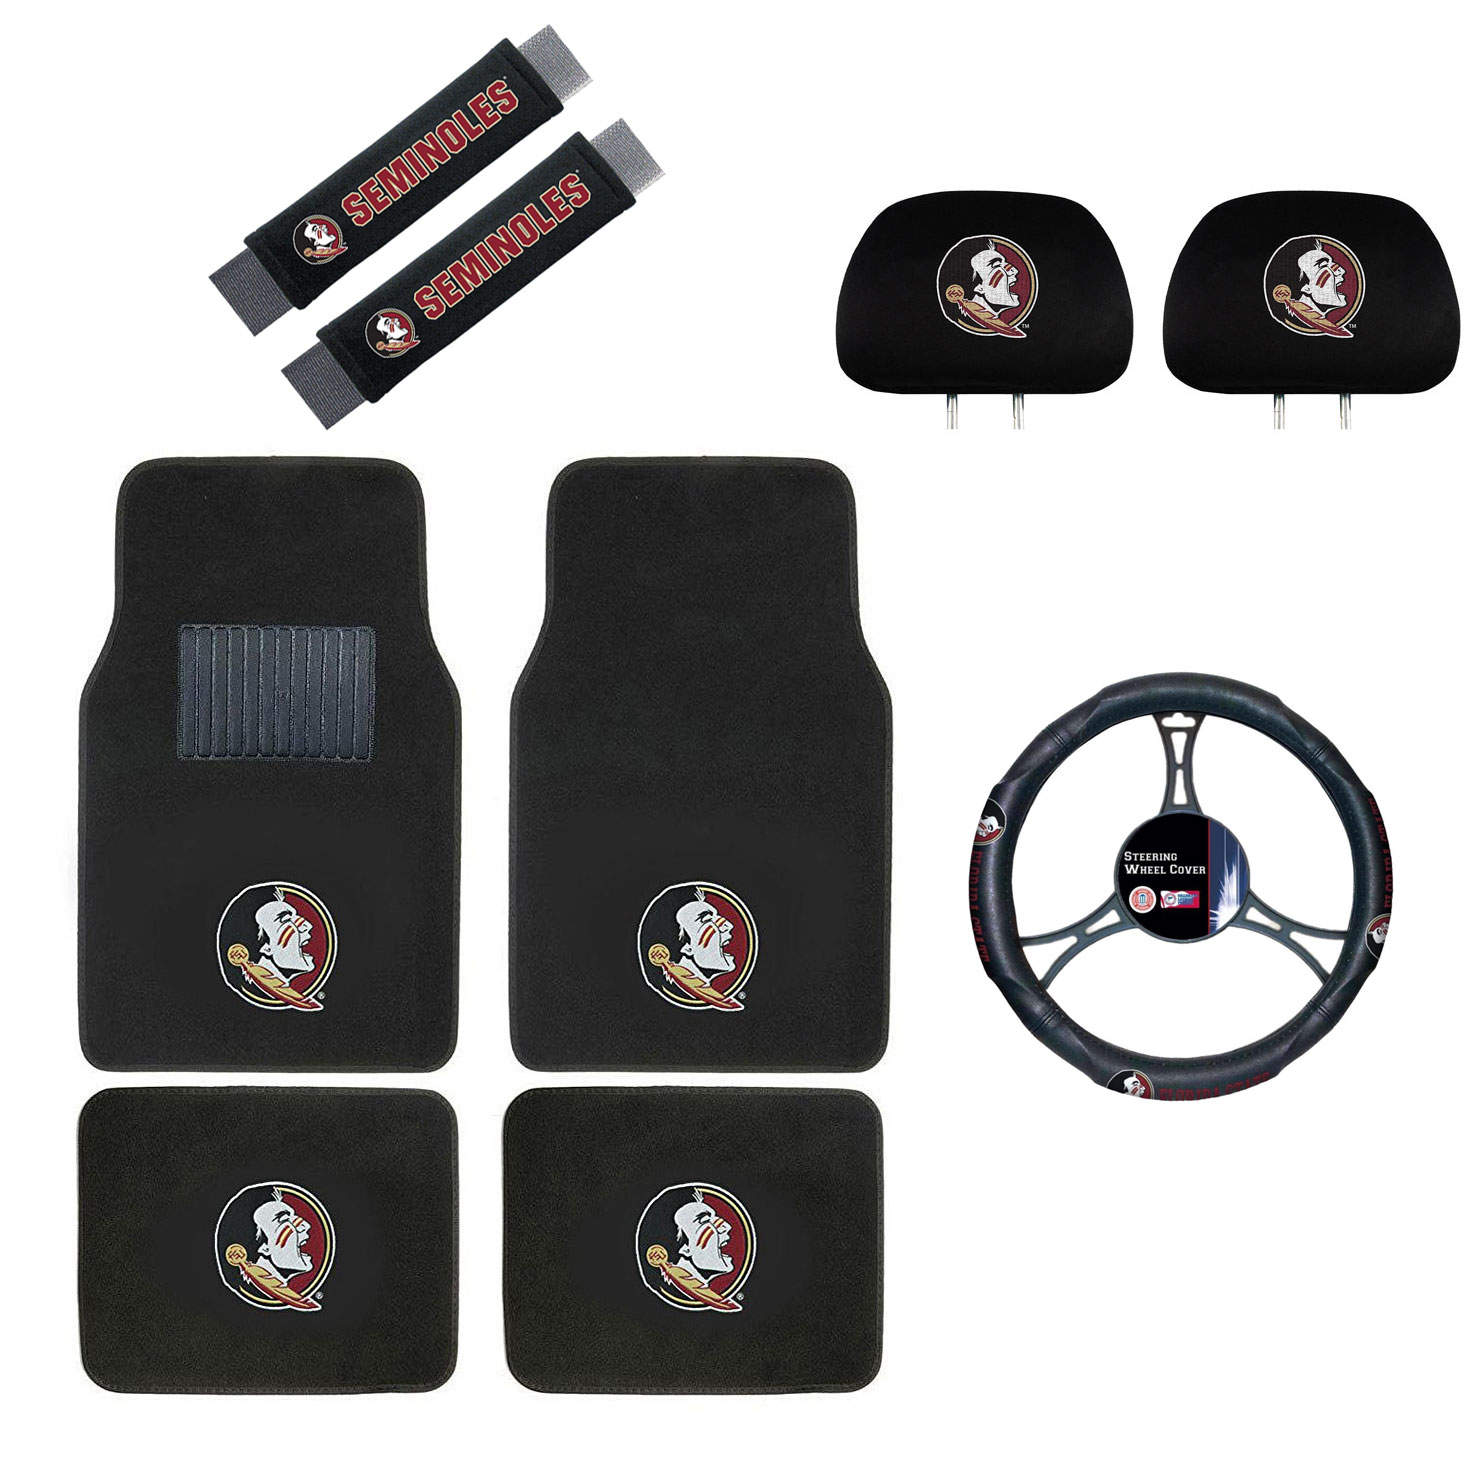 Florida State Seminoles Floor Mat, Headrest Wheel Cover and Shoulder Pads Gift Set